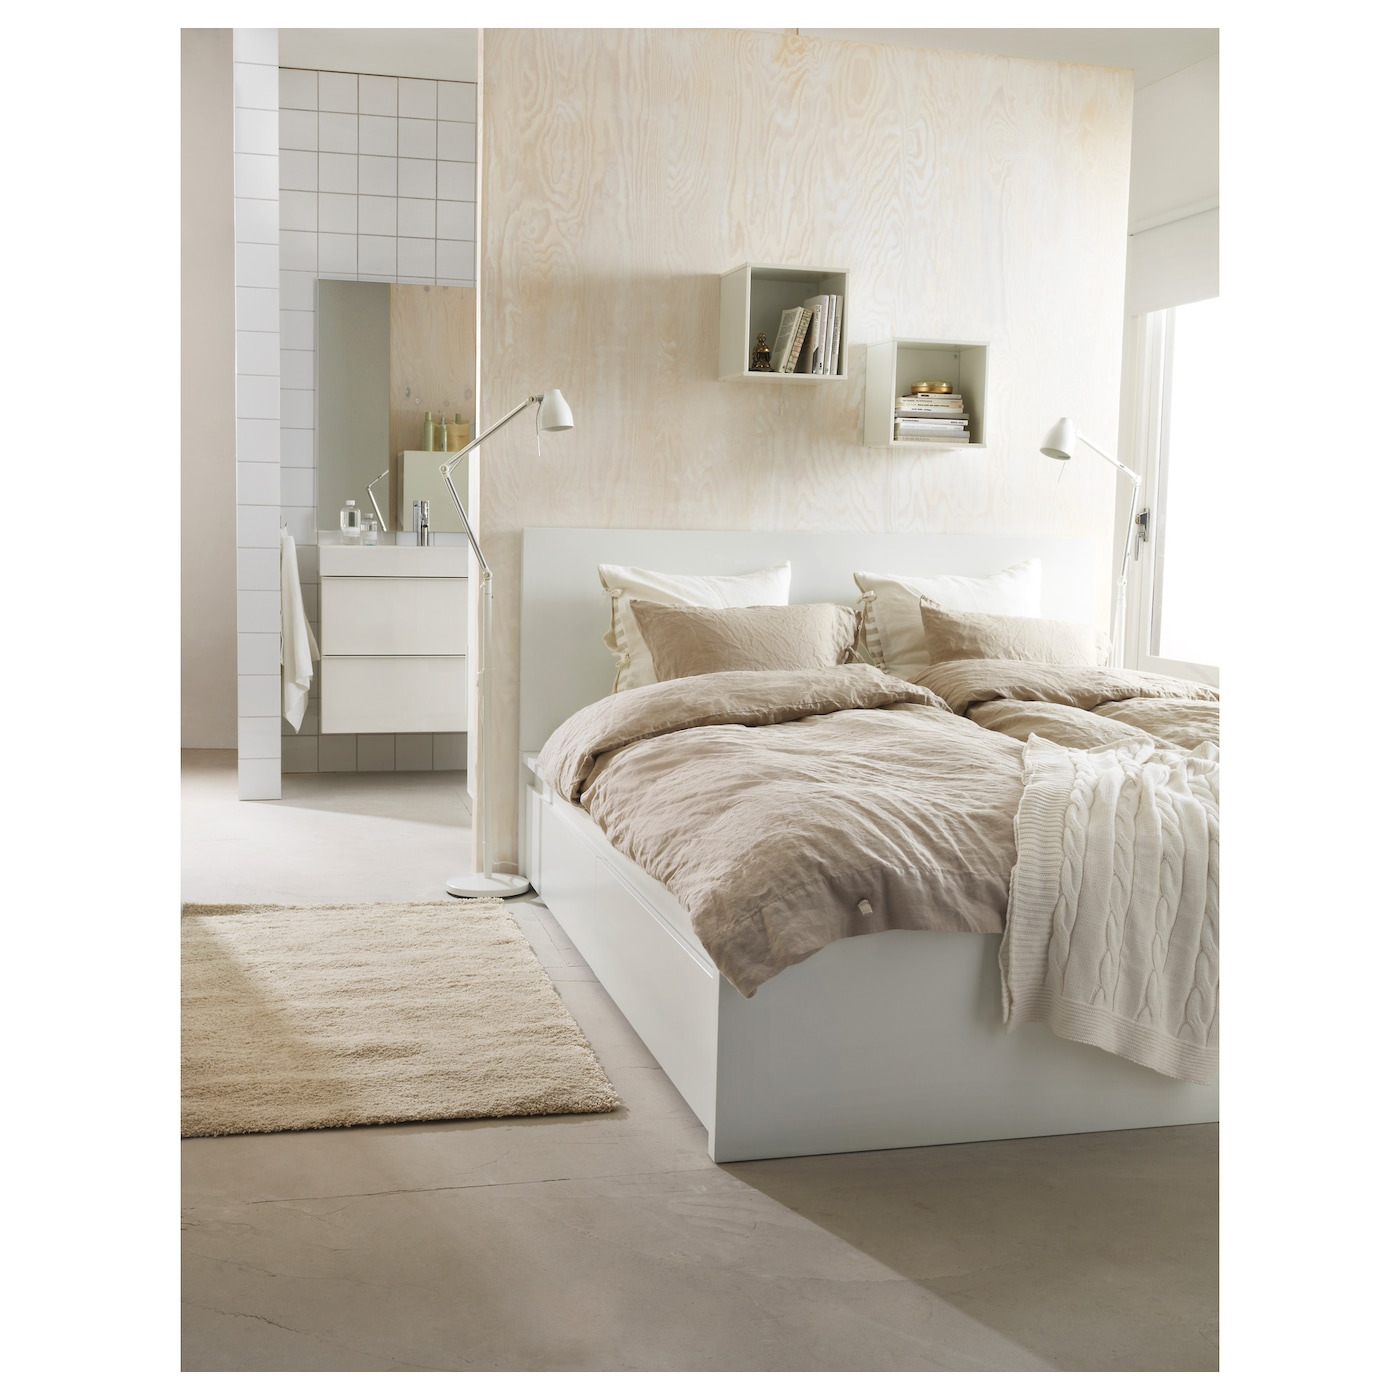 malm cadre lit haut 4rgt blanc 160 x 200 cm ikea. Black Bedroom Furniture Sets. Home Design Ideas